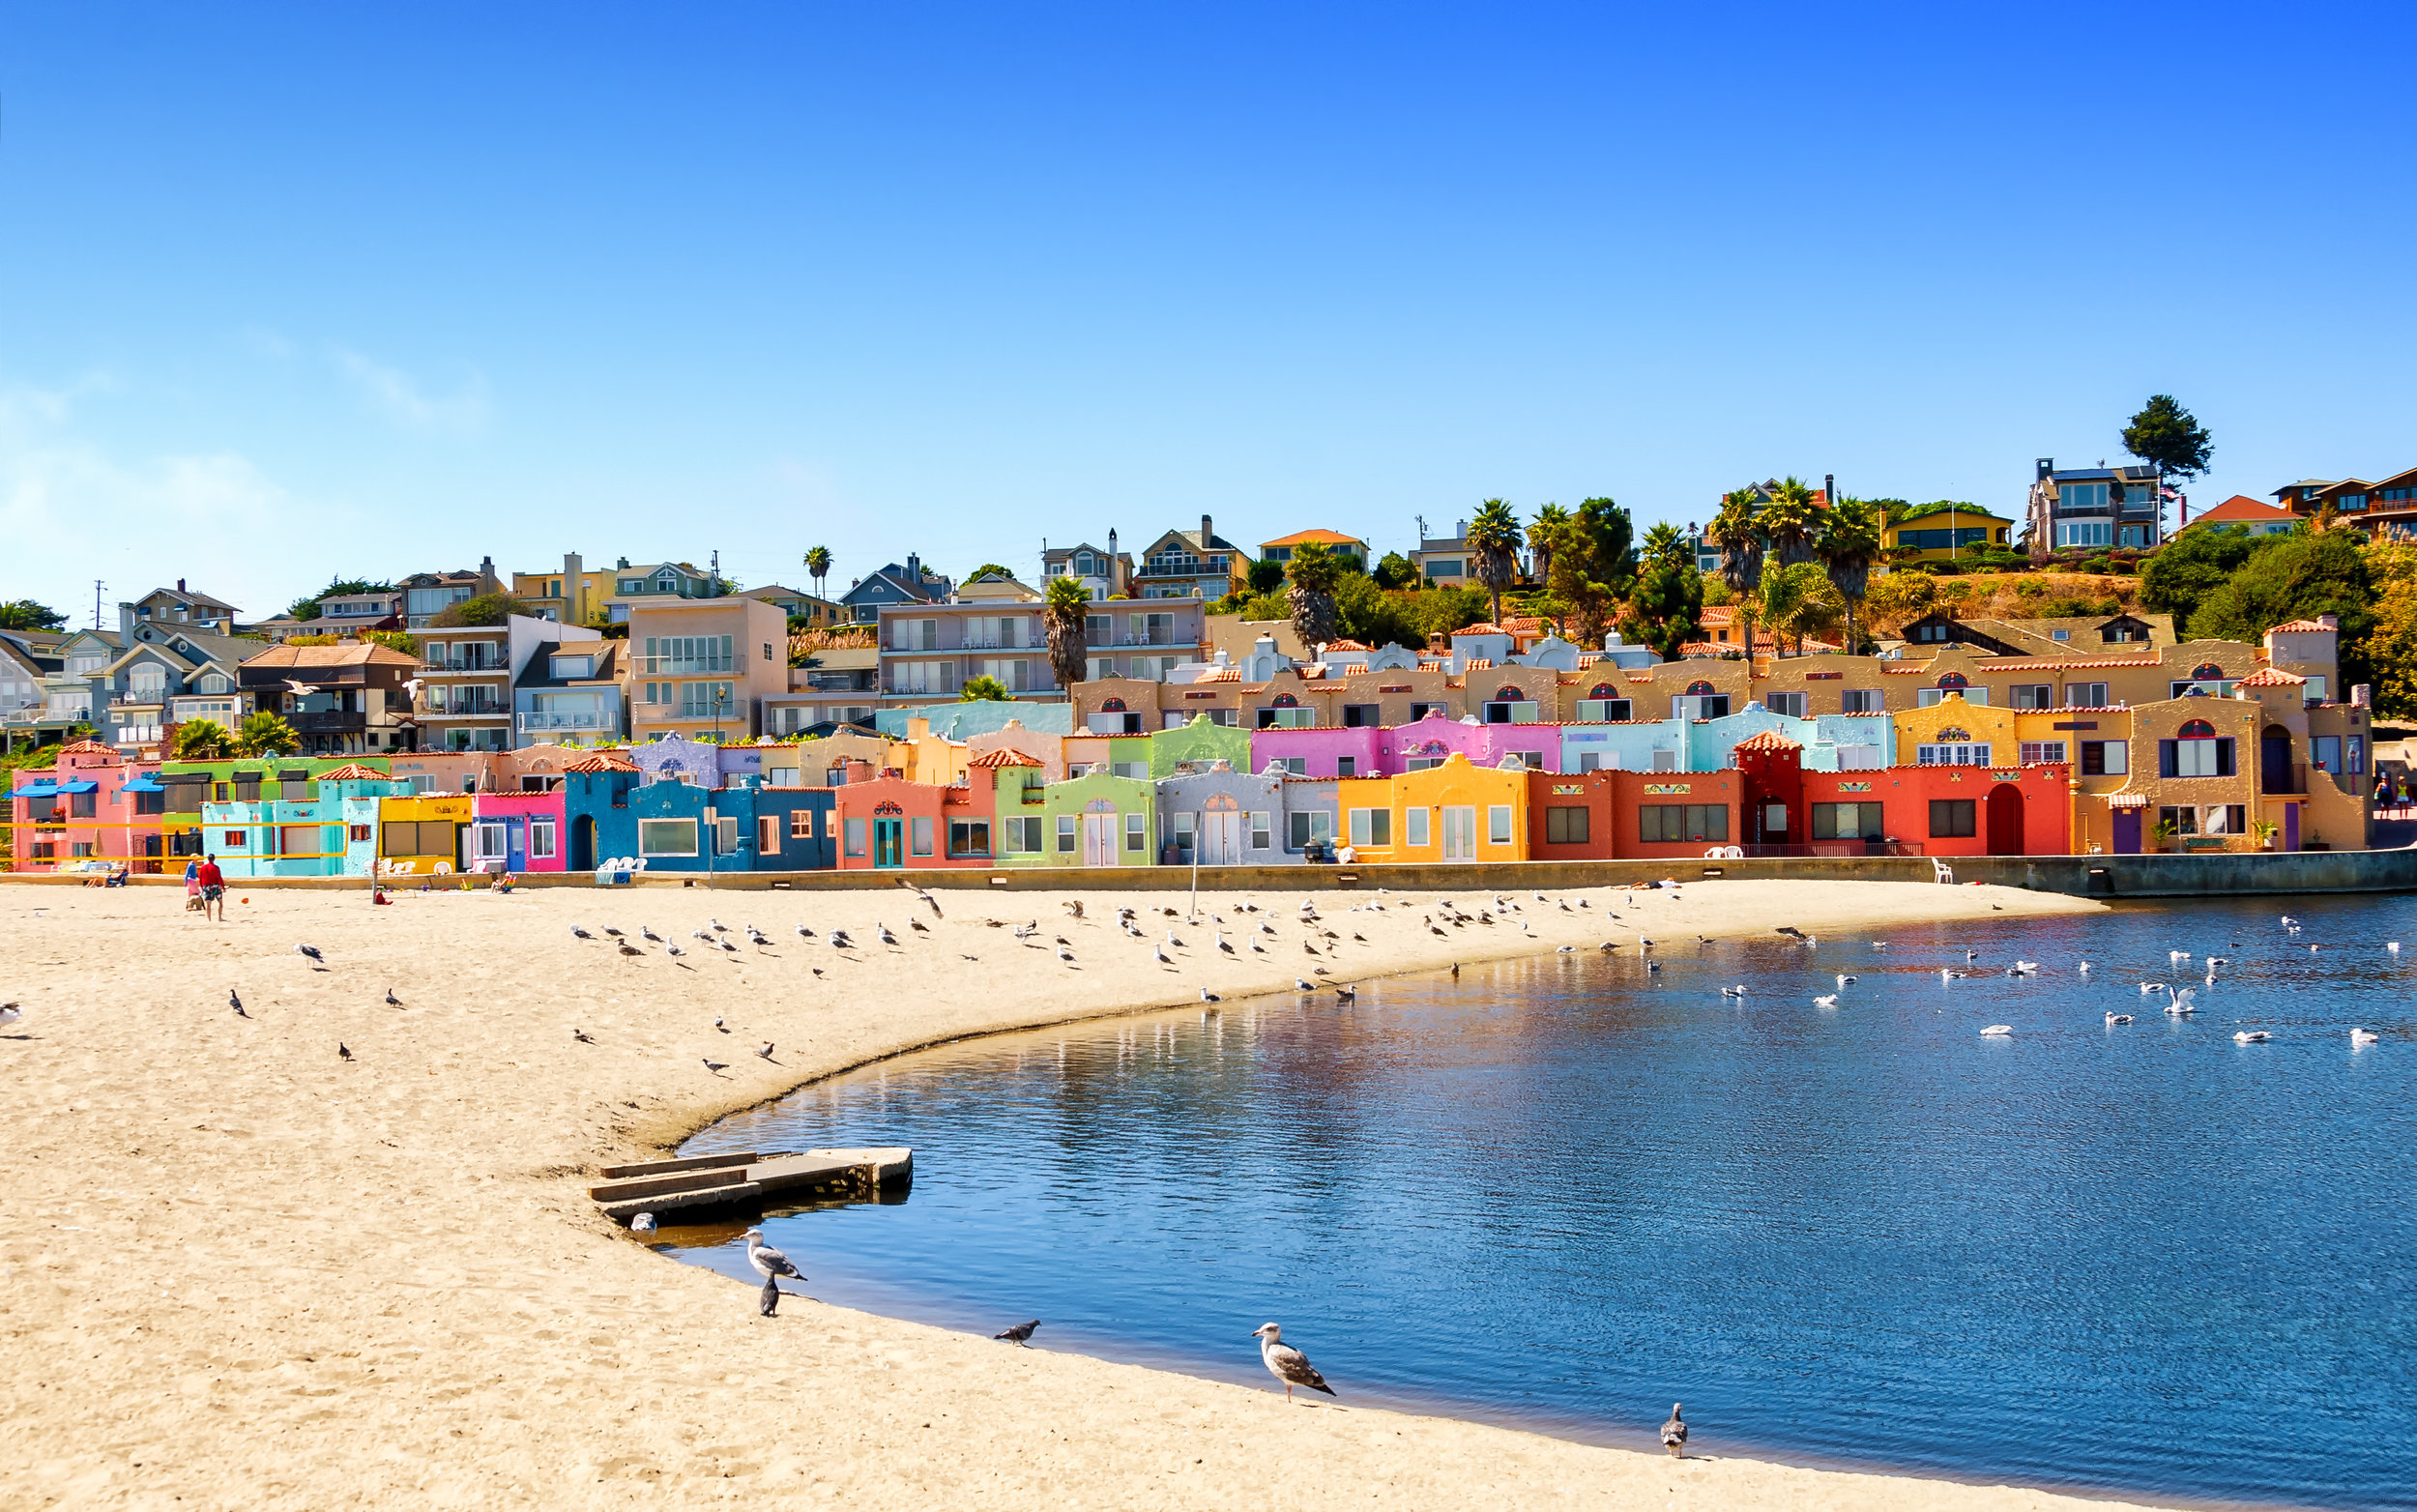 Jul 1:Enjoy time with family - For a short road trip (about 1.5hrs), consider California's rugged central coast in Monterey! A great road trip option is to stop by and have lunch in the colorful seaside town of Capitola, located on Monterey bay!Continue on to the town of Monterey and visit Cannery Row, one-time center of the sardine-packing industry, immortalized by novelist John Steinbeck. Today, it's a popular strip of gift shops, seafood restaurants and bars in converted factories. Also famous is Monterey Bay Aquarium, with thousands of marine animals and plants on display in underwater and interactive exhibitsAnd/or Carmel-By-The-Sea, a small beach city on California's Monterey Peninsula. It's known for the museums and library of the historic Carmel Mission, and the fairytale cottages and galleries of its village-like center. The Scenic Bluff Path runs from surf spot Carmel Beach to bird-rich Carmel River State Beach, with a scuba entry point. South lie the sea animals and whaling museum of Point Lobos State Natural Reserve. And if you keep going just a bit further... Big Sur.